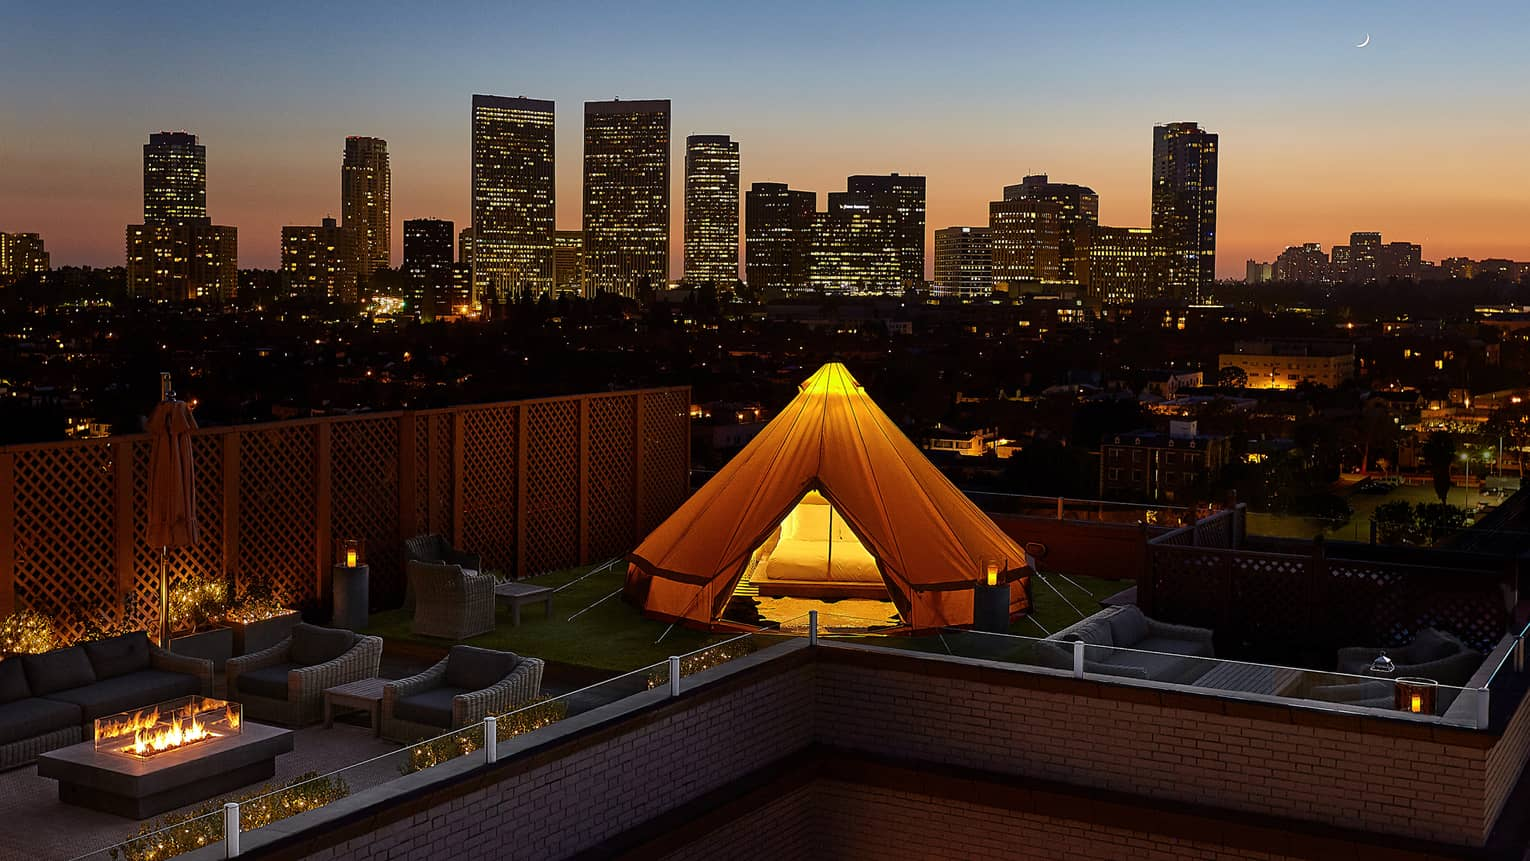 Glowing white tent, bed on rooftop patio by chairs, outdoor fireplace, Beverly Hills sunset city views